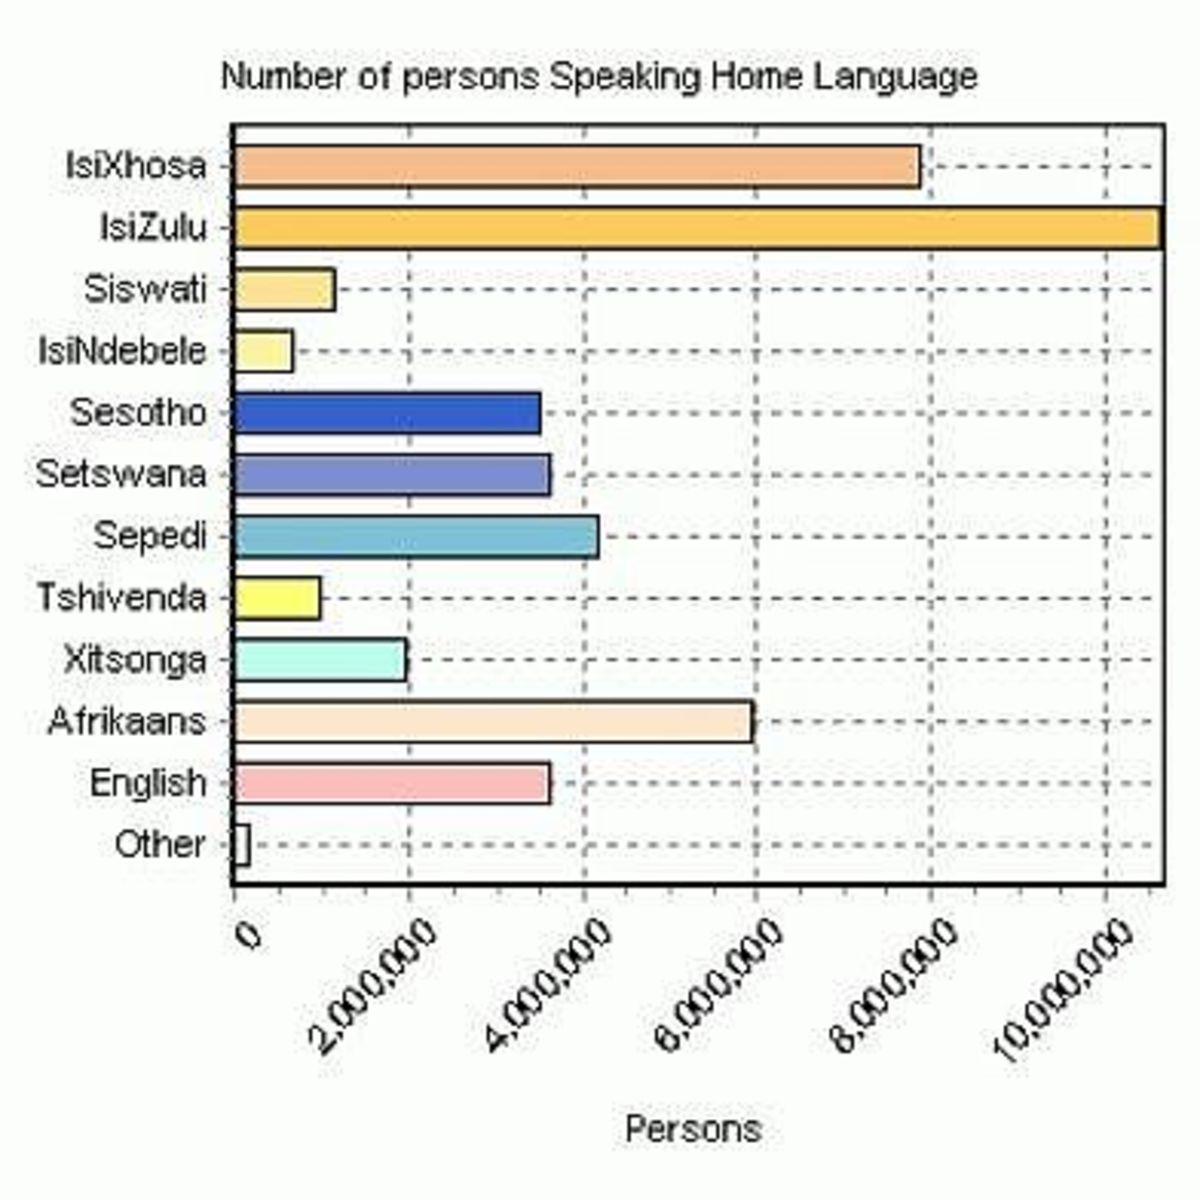 Home Languages of South Africa Citizens